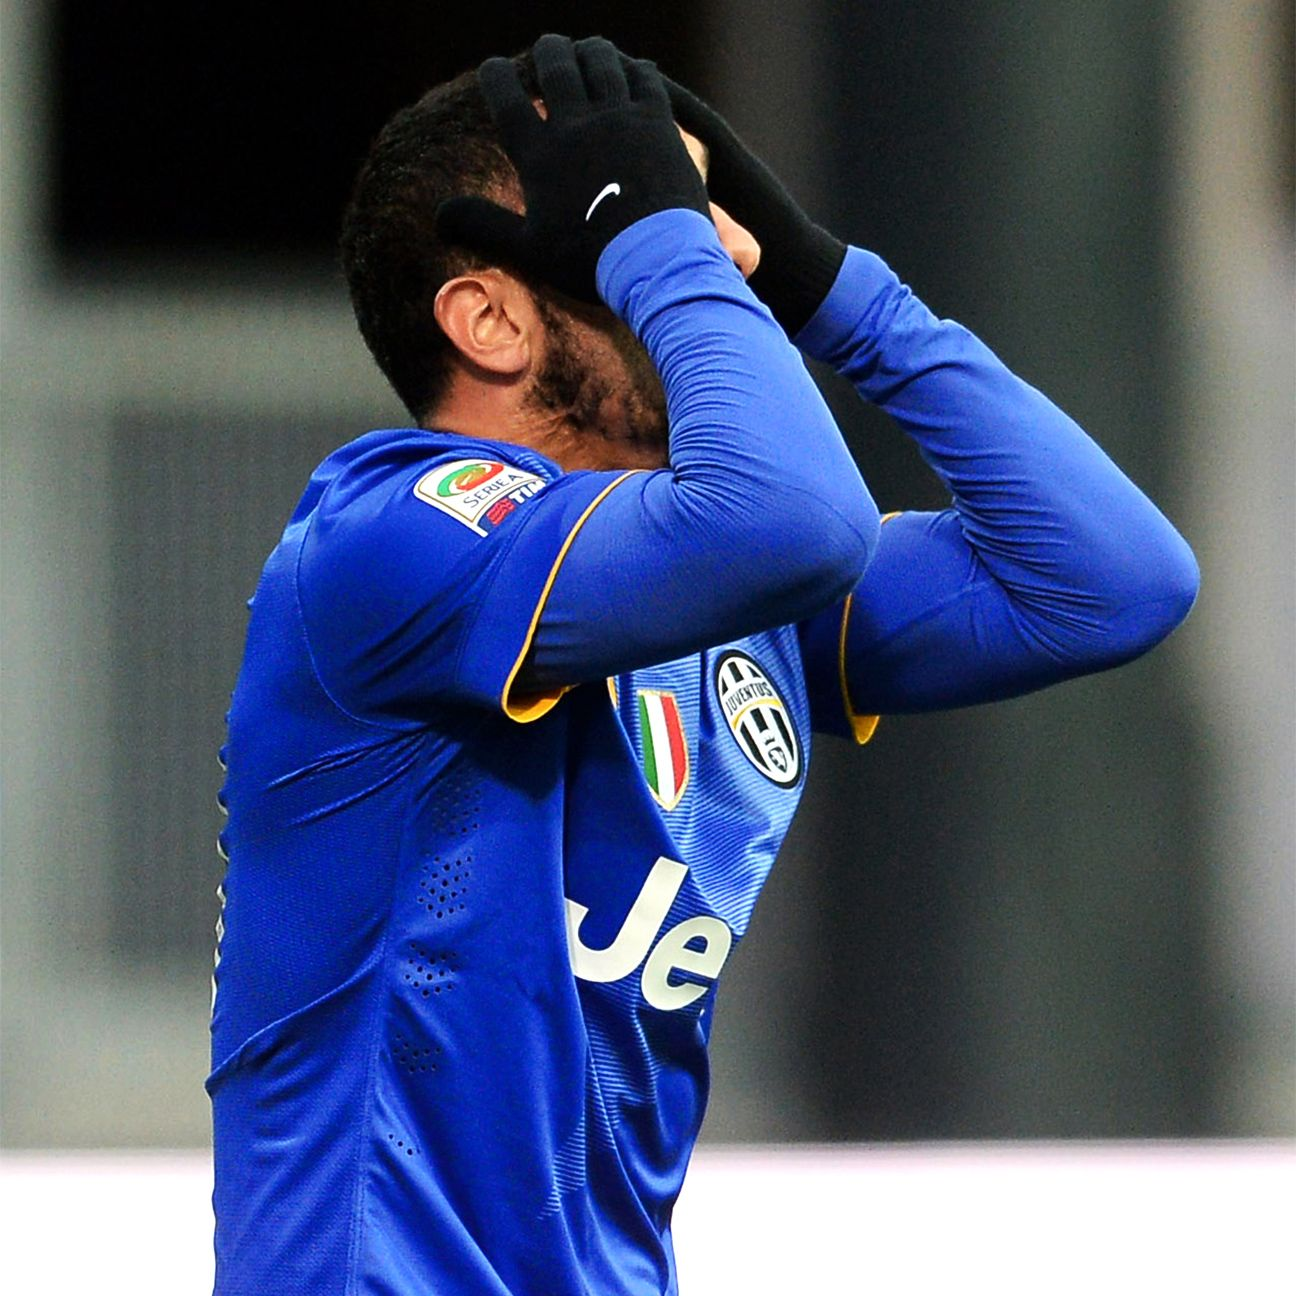 Carlos Tevez and Juventus endured a frustrating afternoon on Sunday versus Udinese.